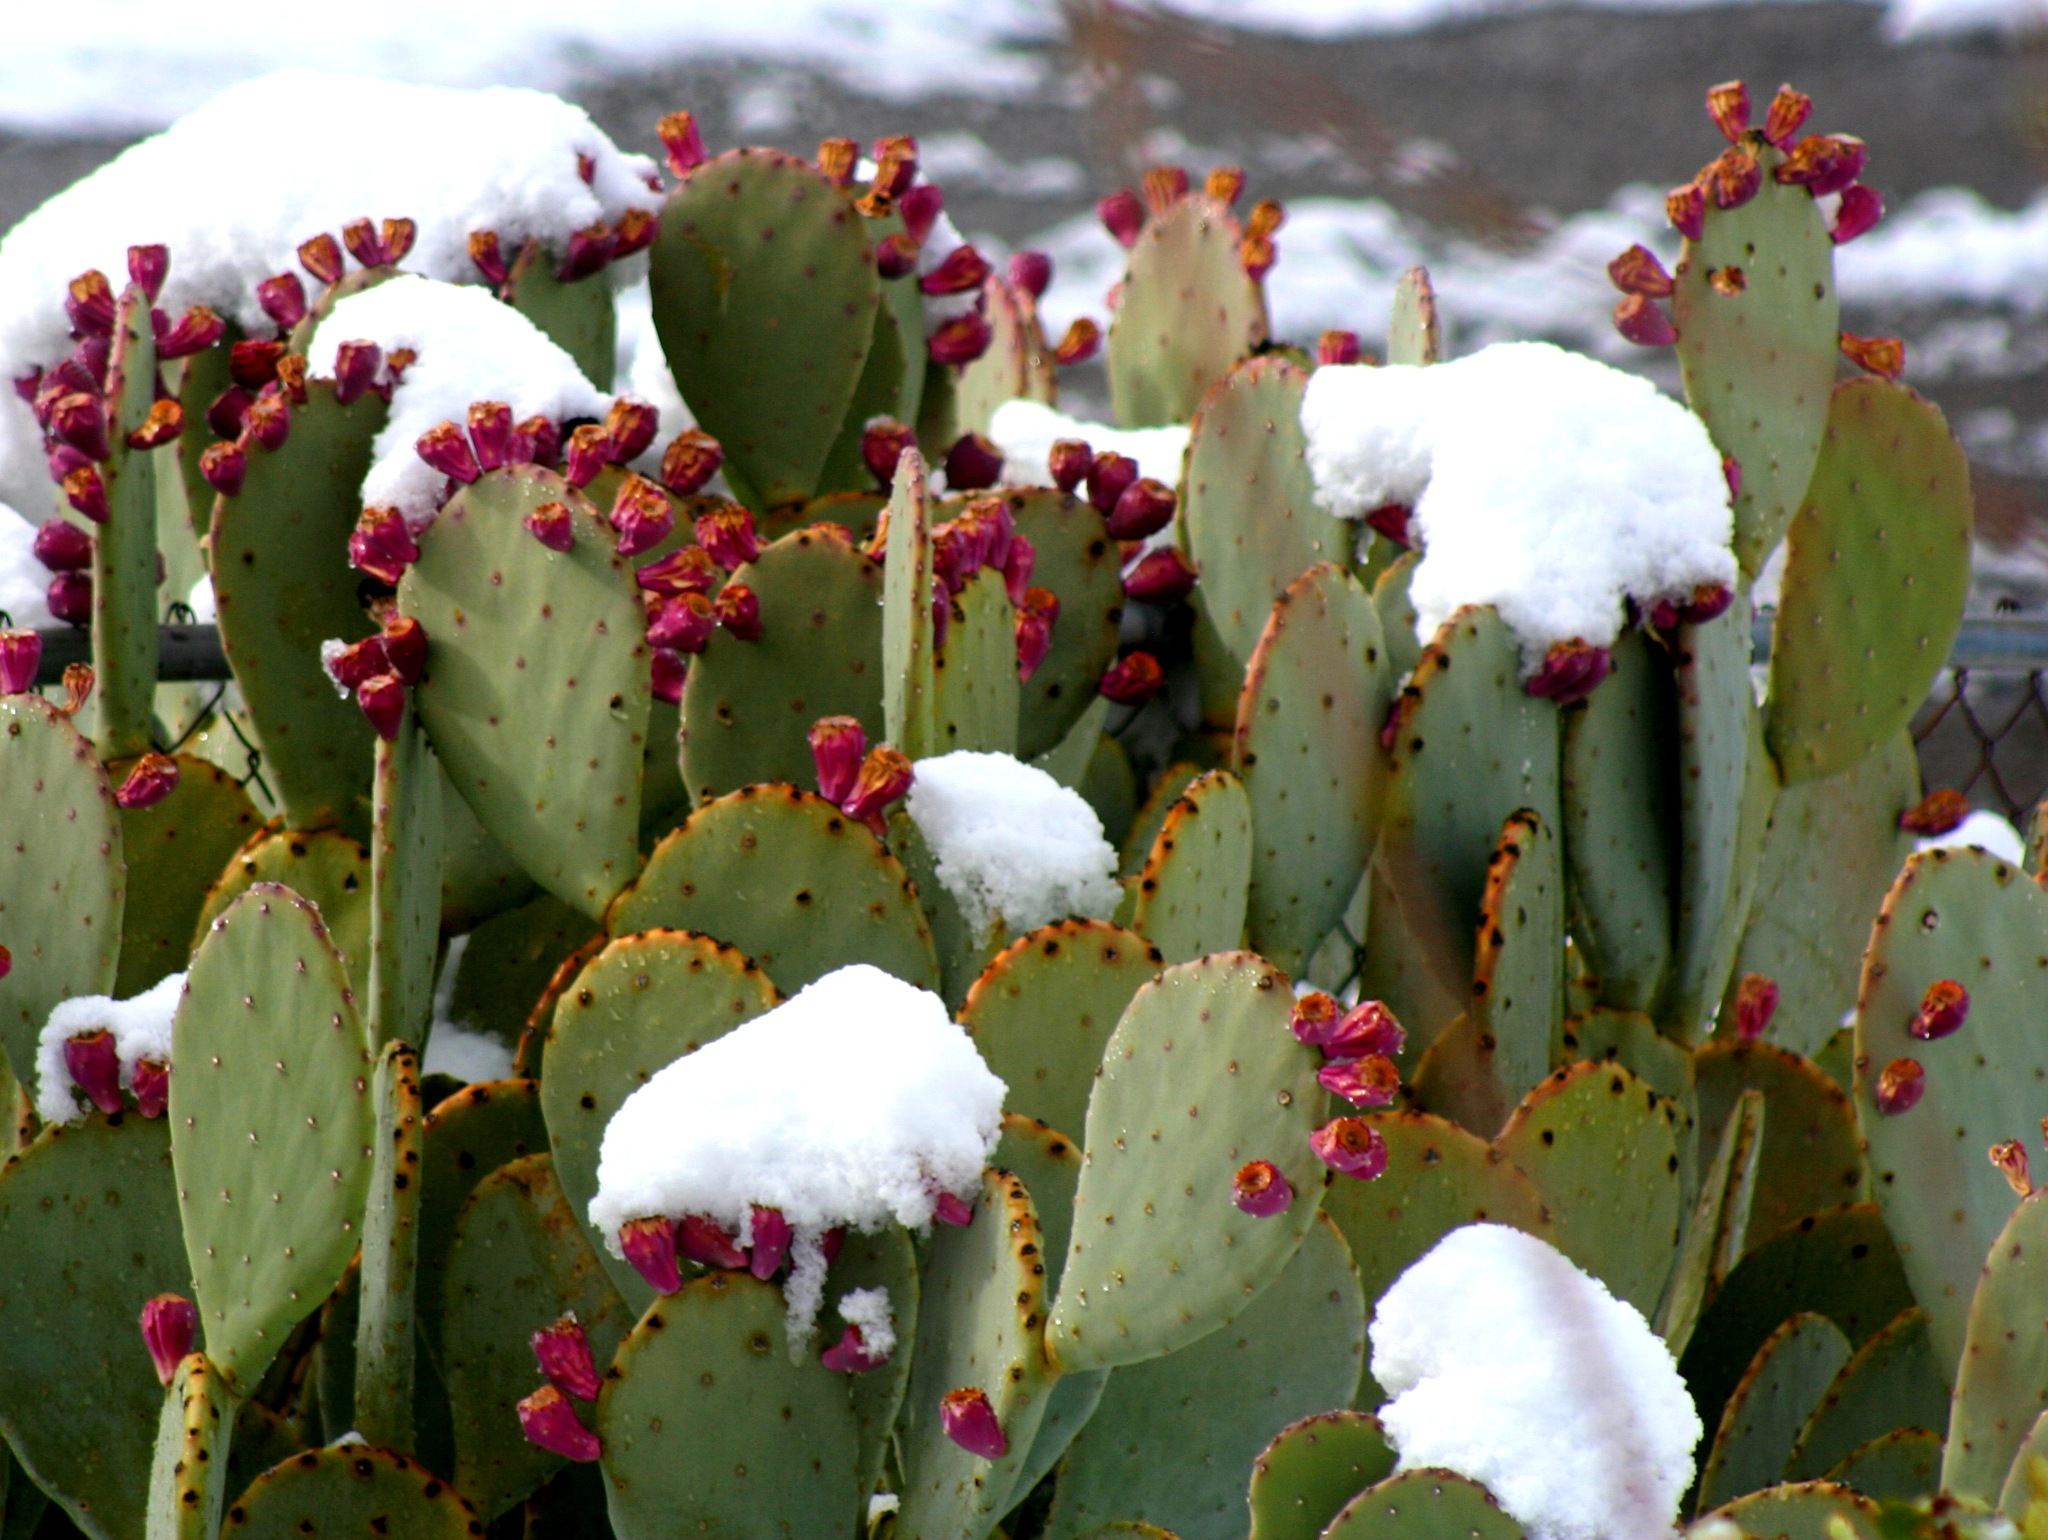 Snow on Prickly Pear by molterserrano